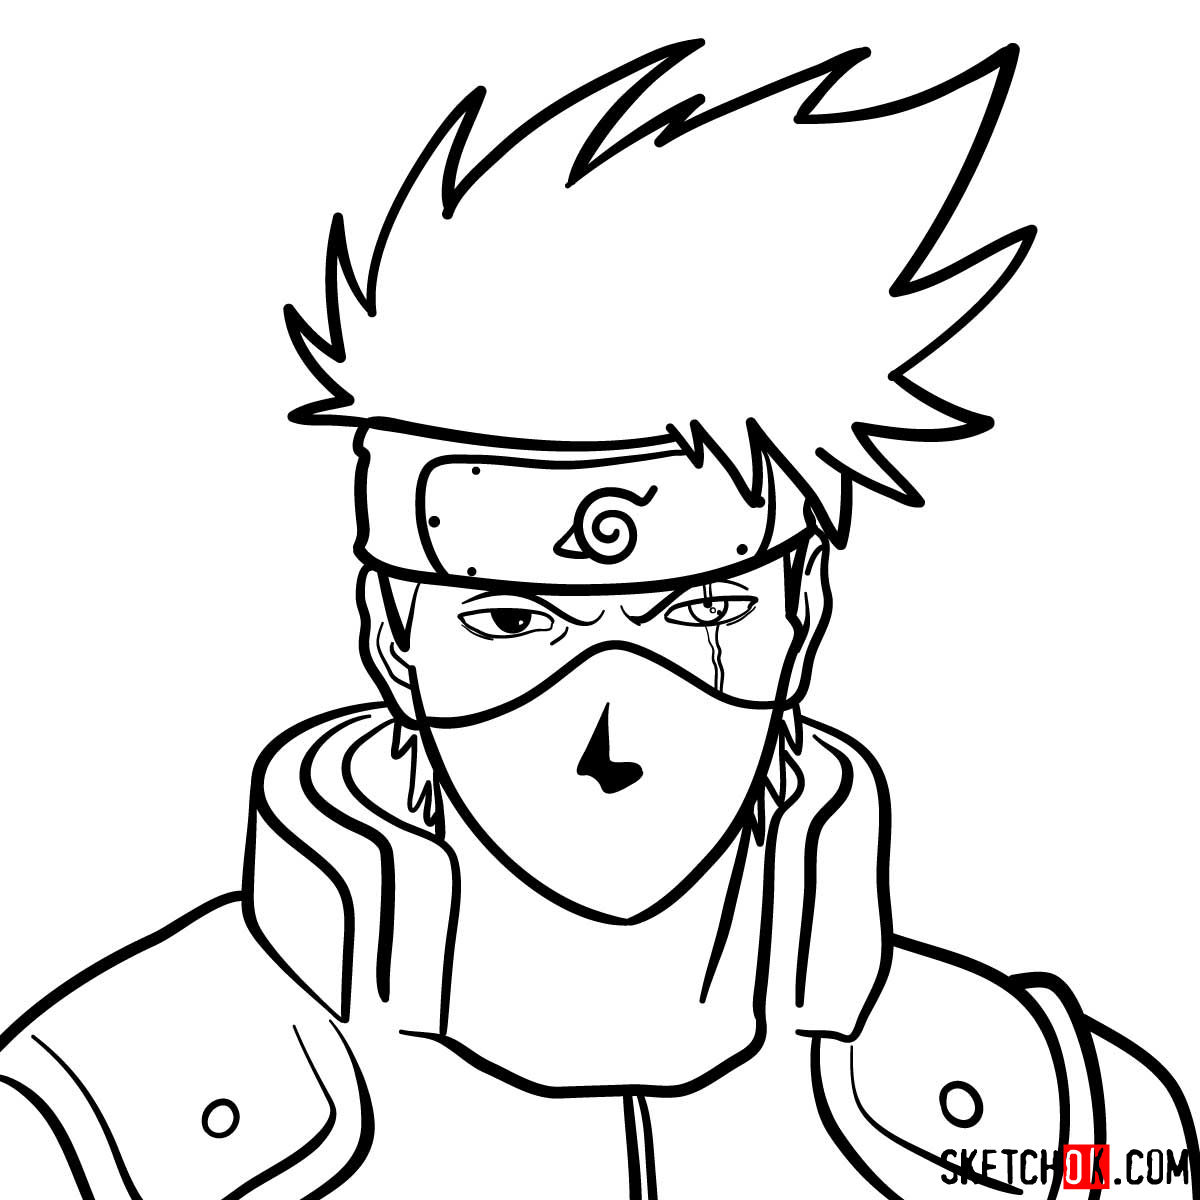 How to draw the face of Kakashi Hatake (Naruto) - step 12